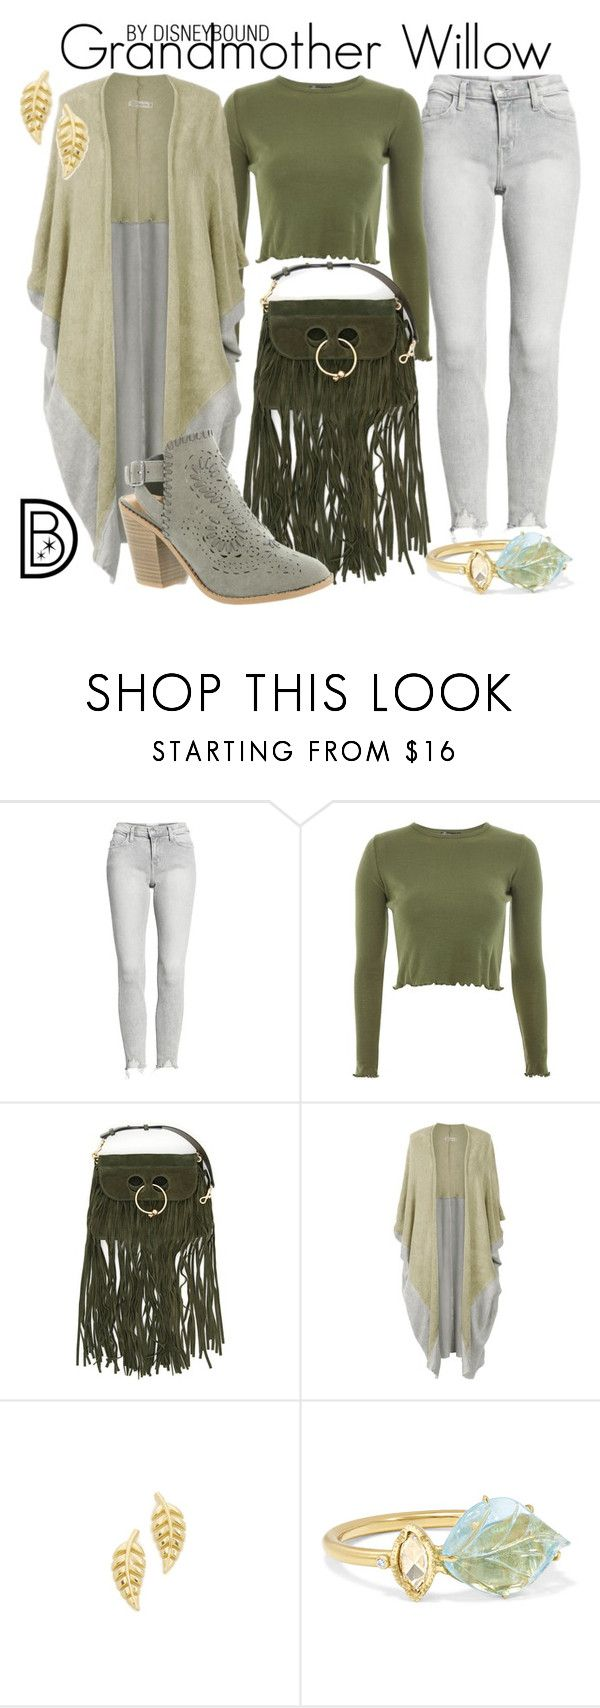 """""""Grandmother Willow"""" by leslieakay ❤ liked on Polyvore featuring Current/Elliott, Topshop, J.W. Anderson, Lovestrength, Jennifer Meyer Jewelry, BROOKE GREGSON, Sugar, disney, disneybound and disneycharacter"""